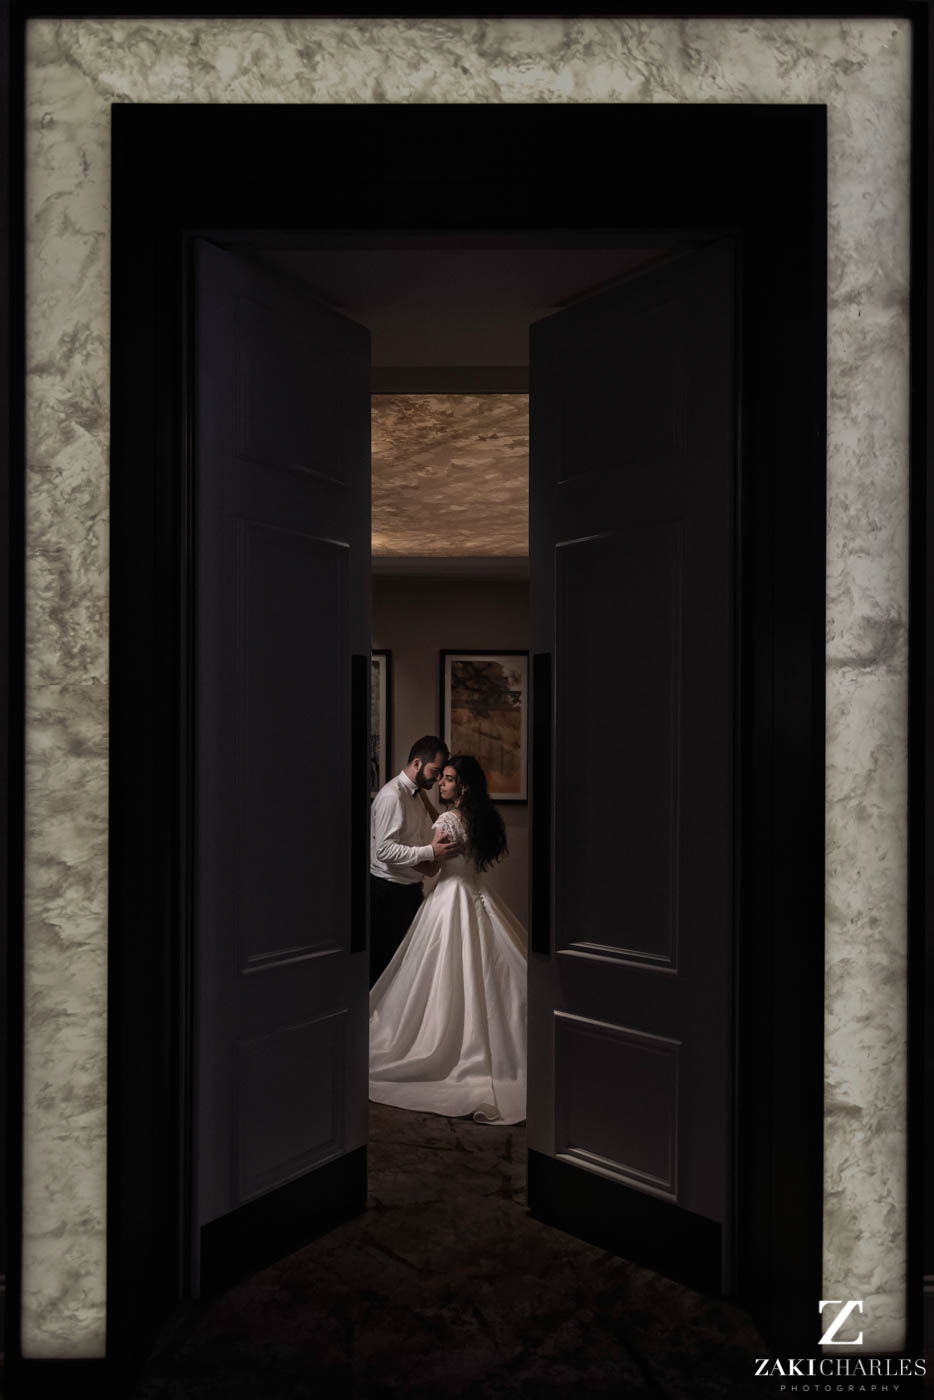 Fine art wedding photography at Marriott Hotel Regents Park 5